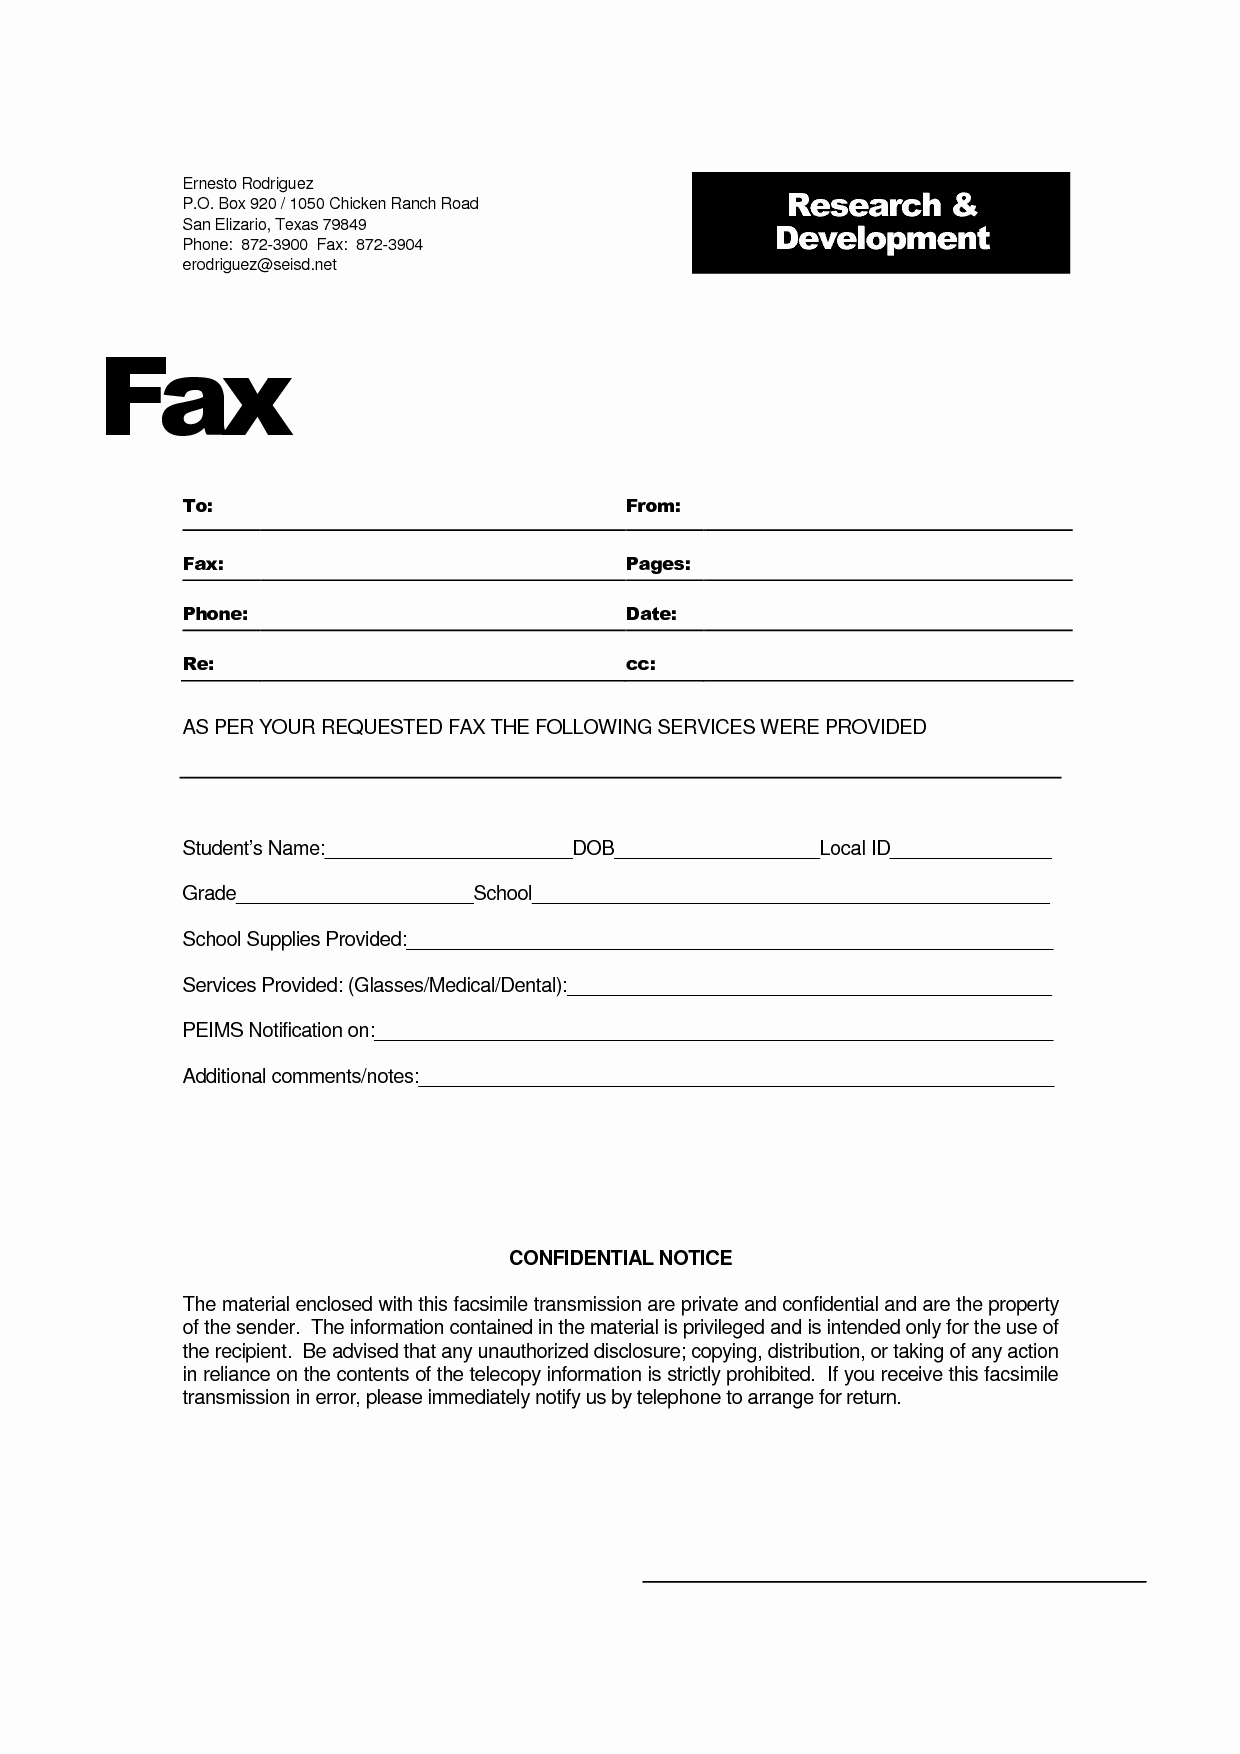 Confidential Fax Cover Sheet Pdf New Fax